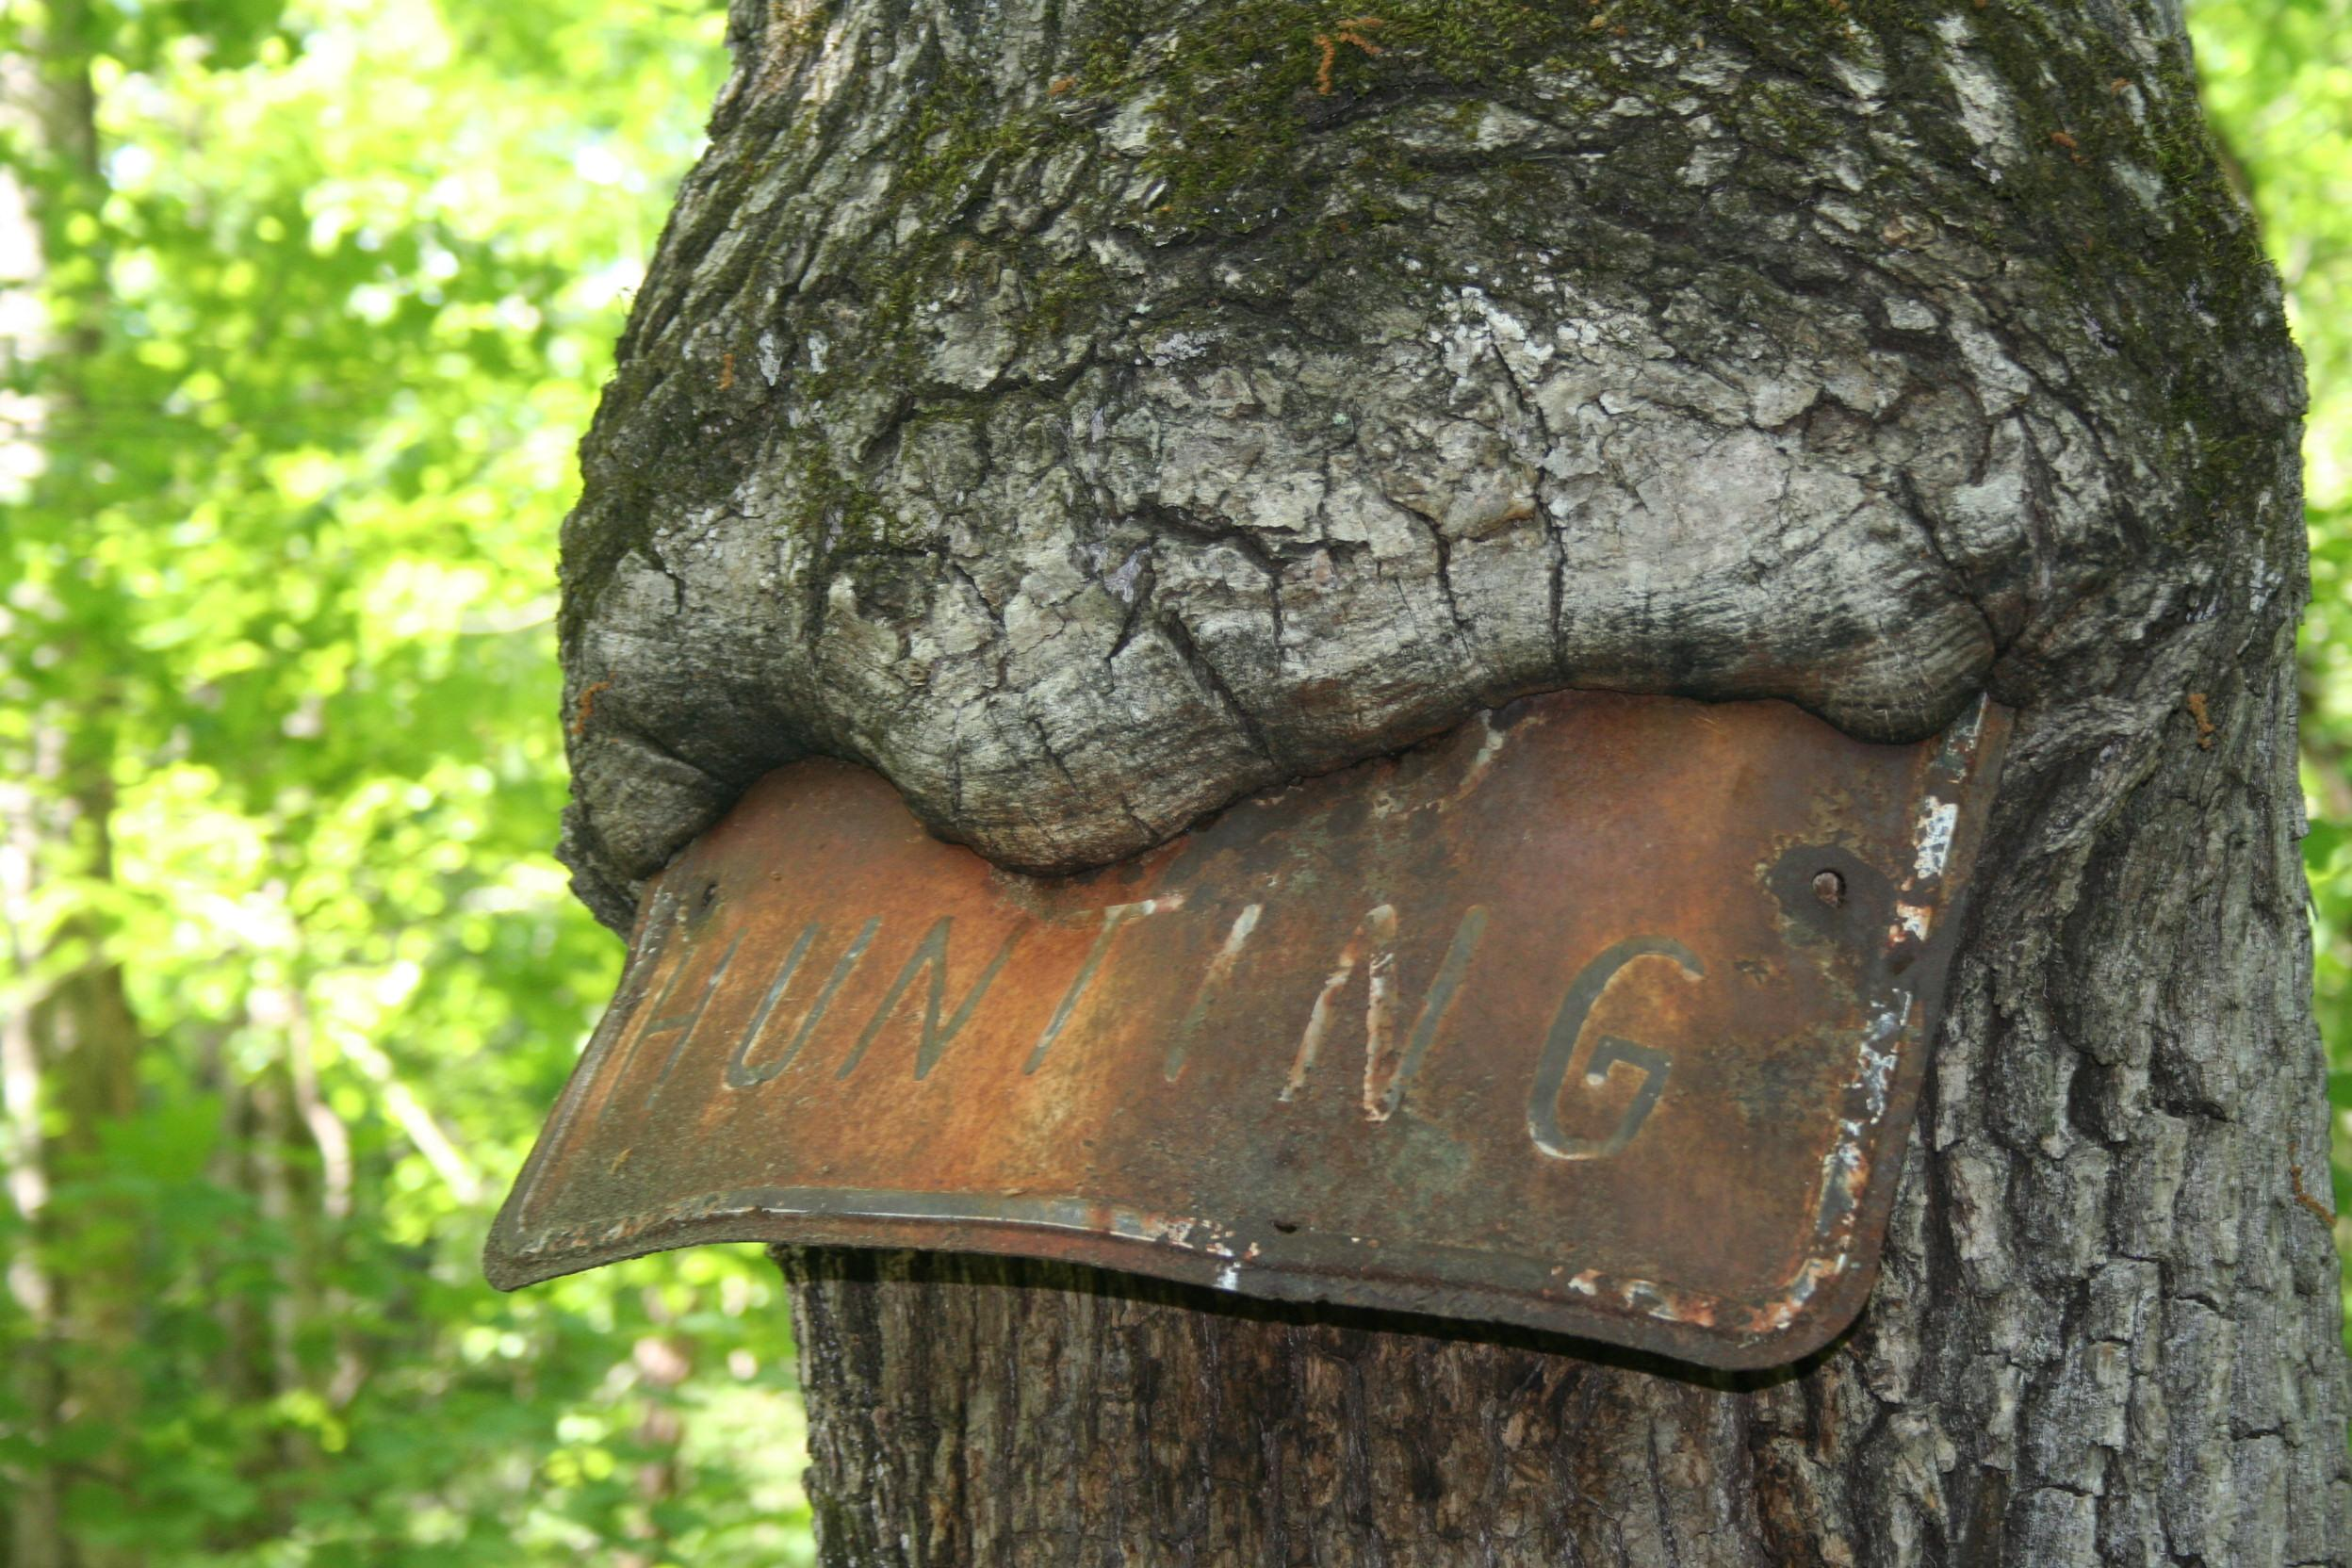 Tree eating sign